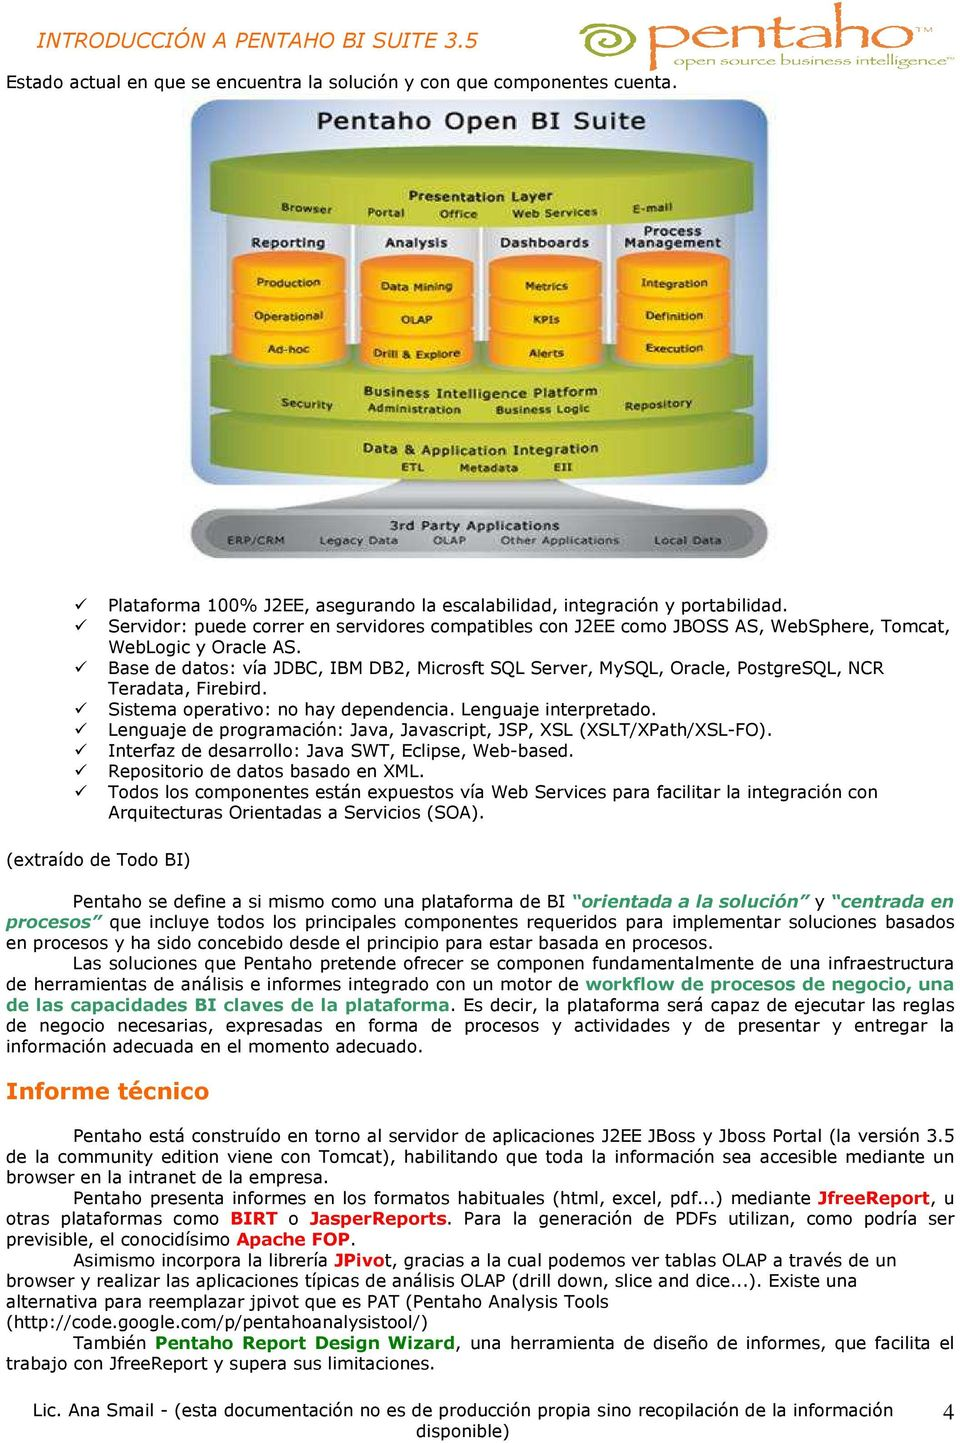 Base de datos: vía JDBC, IBM DB2, Microsft SQL Server, MySQL, Oracle, PostgreSQL, NCR Teradata, Firebird. Sistema operativo: no hay dependencia. Lenguaje interpretado.